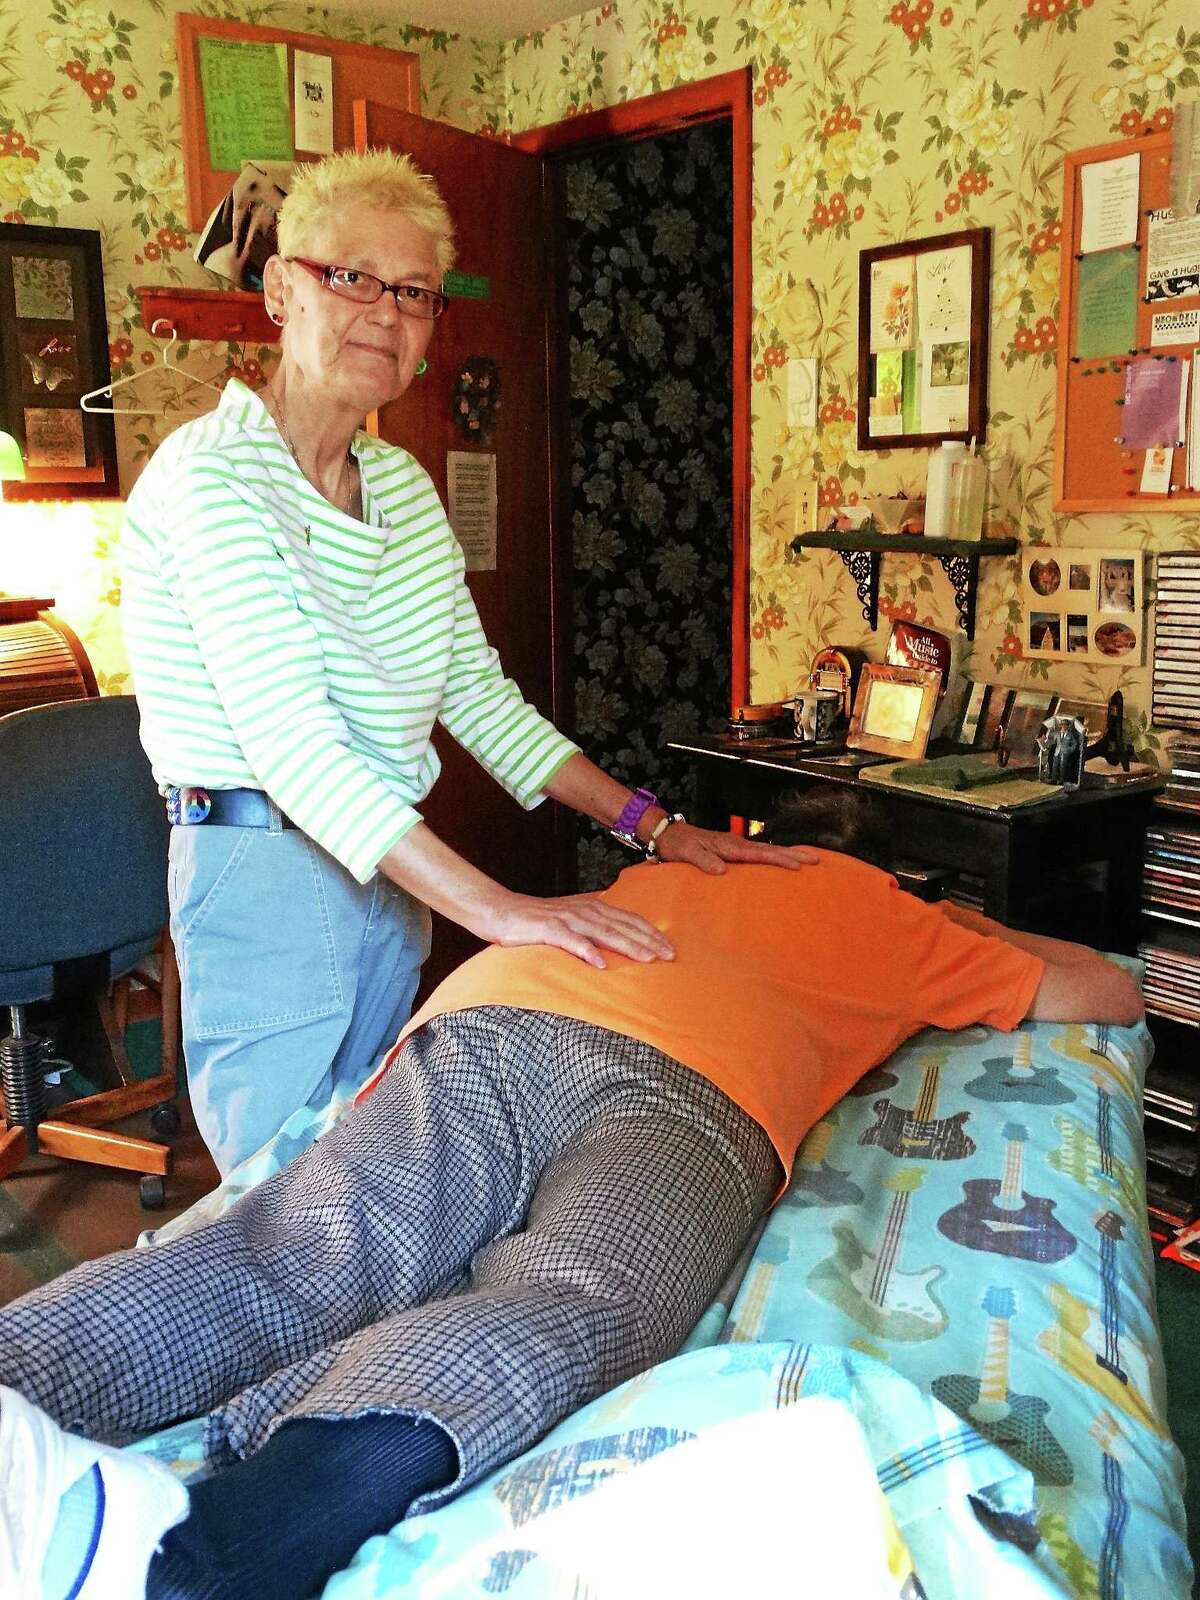 Middletown massage therapist Lorraine Dobek is a recovering alcoholic who has used her occupation to heal herself and others.